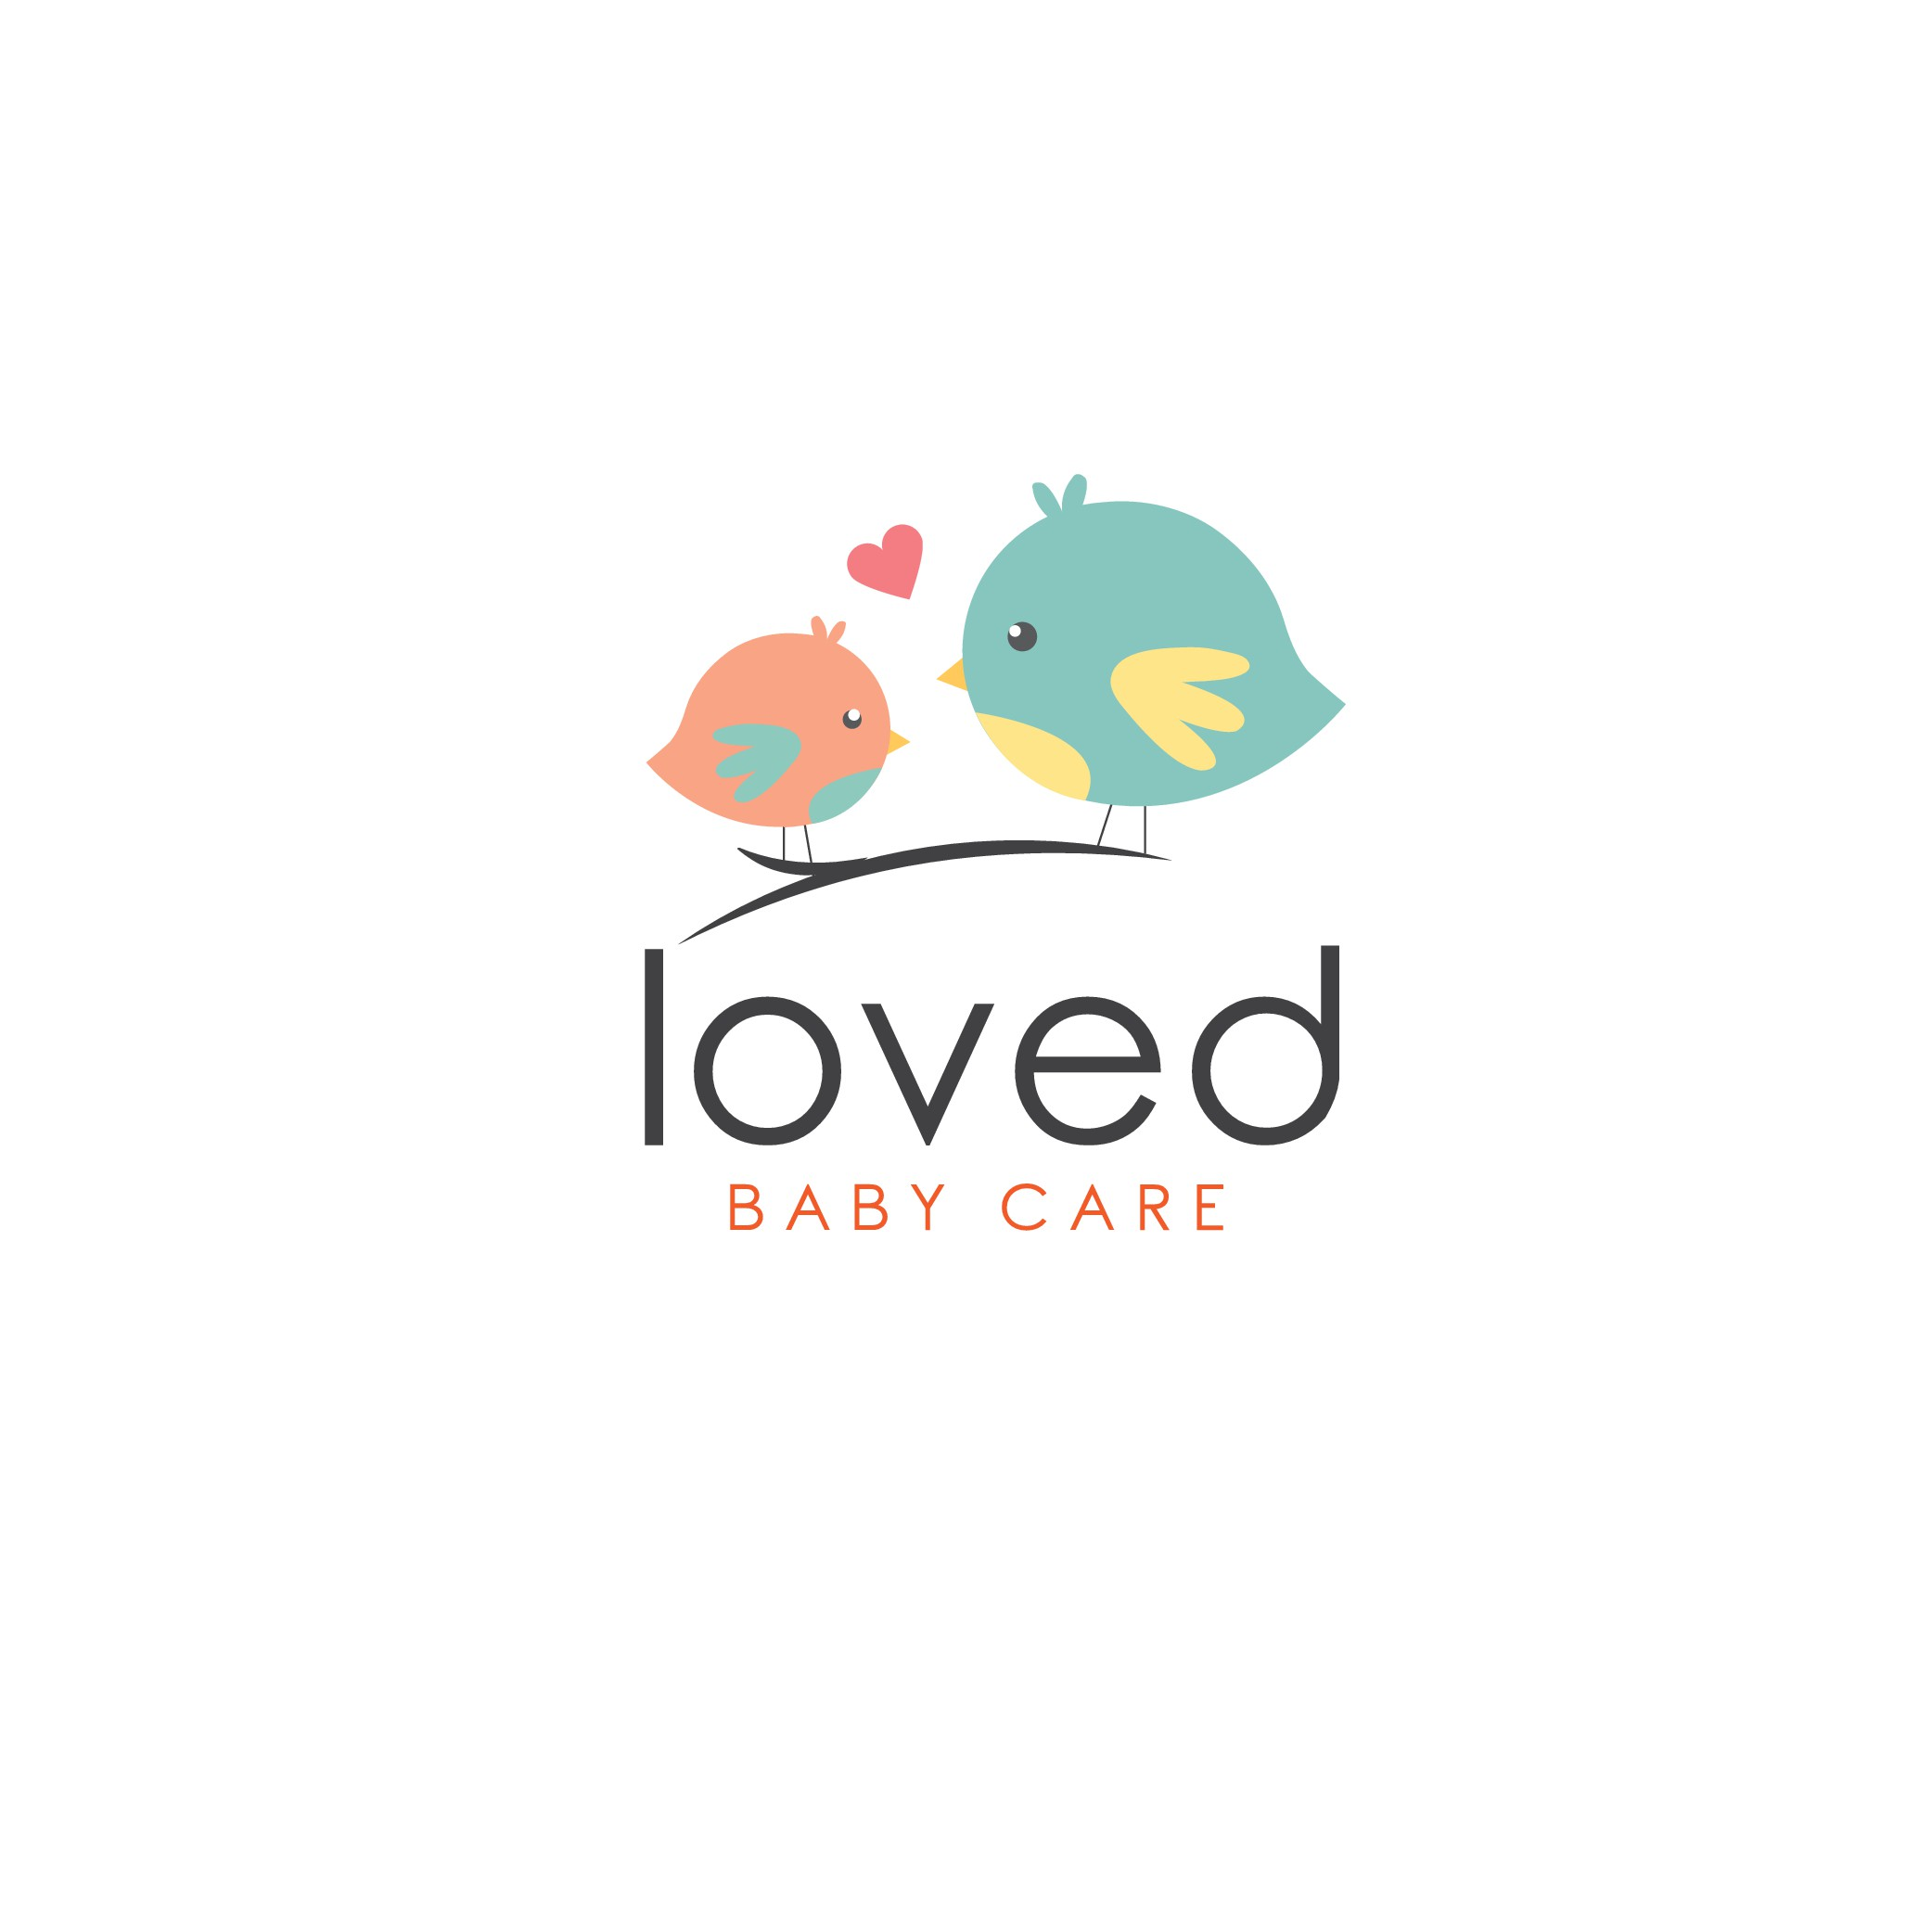 """Loved Baby Care"" needs a logo to make new moms feel confident their little one is safe and healthy"